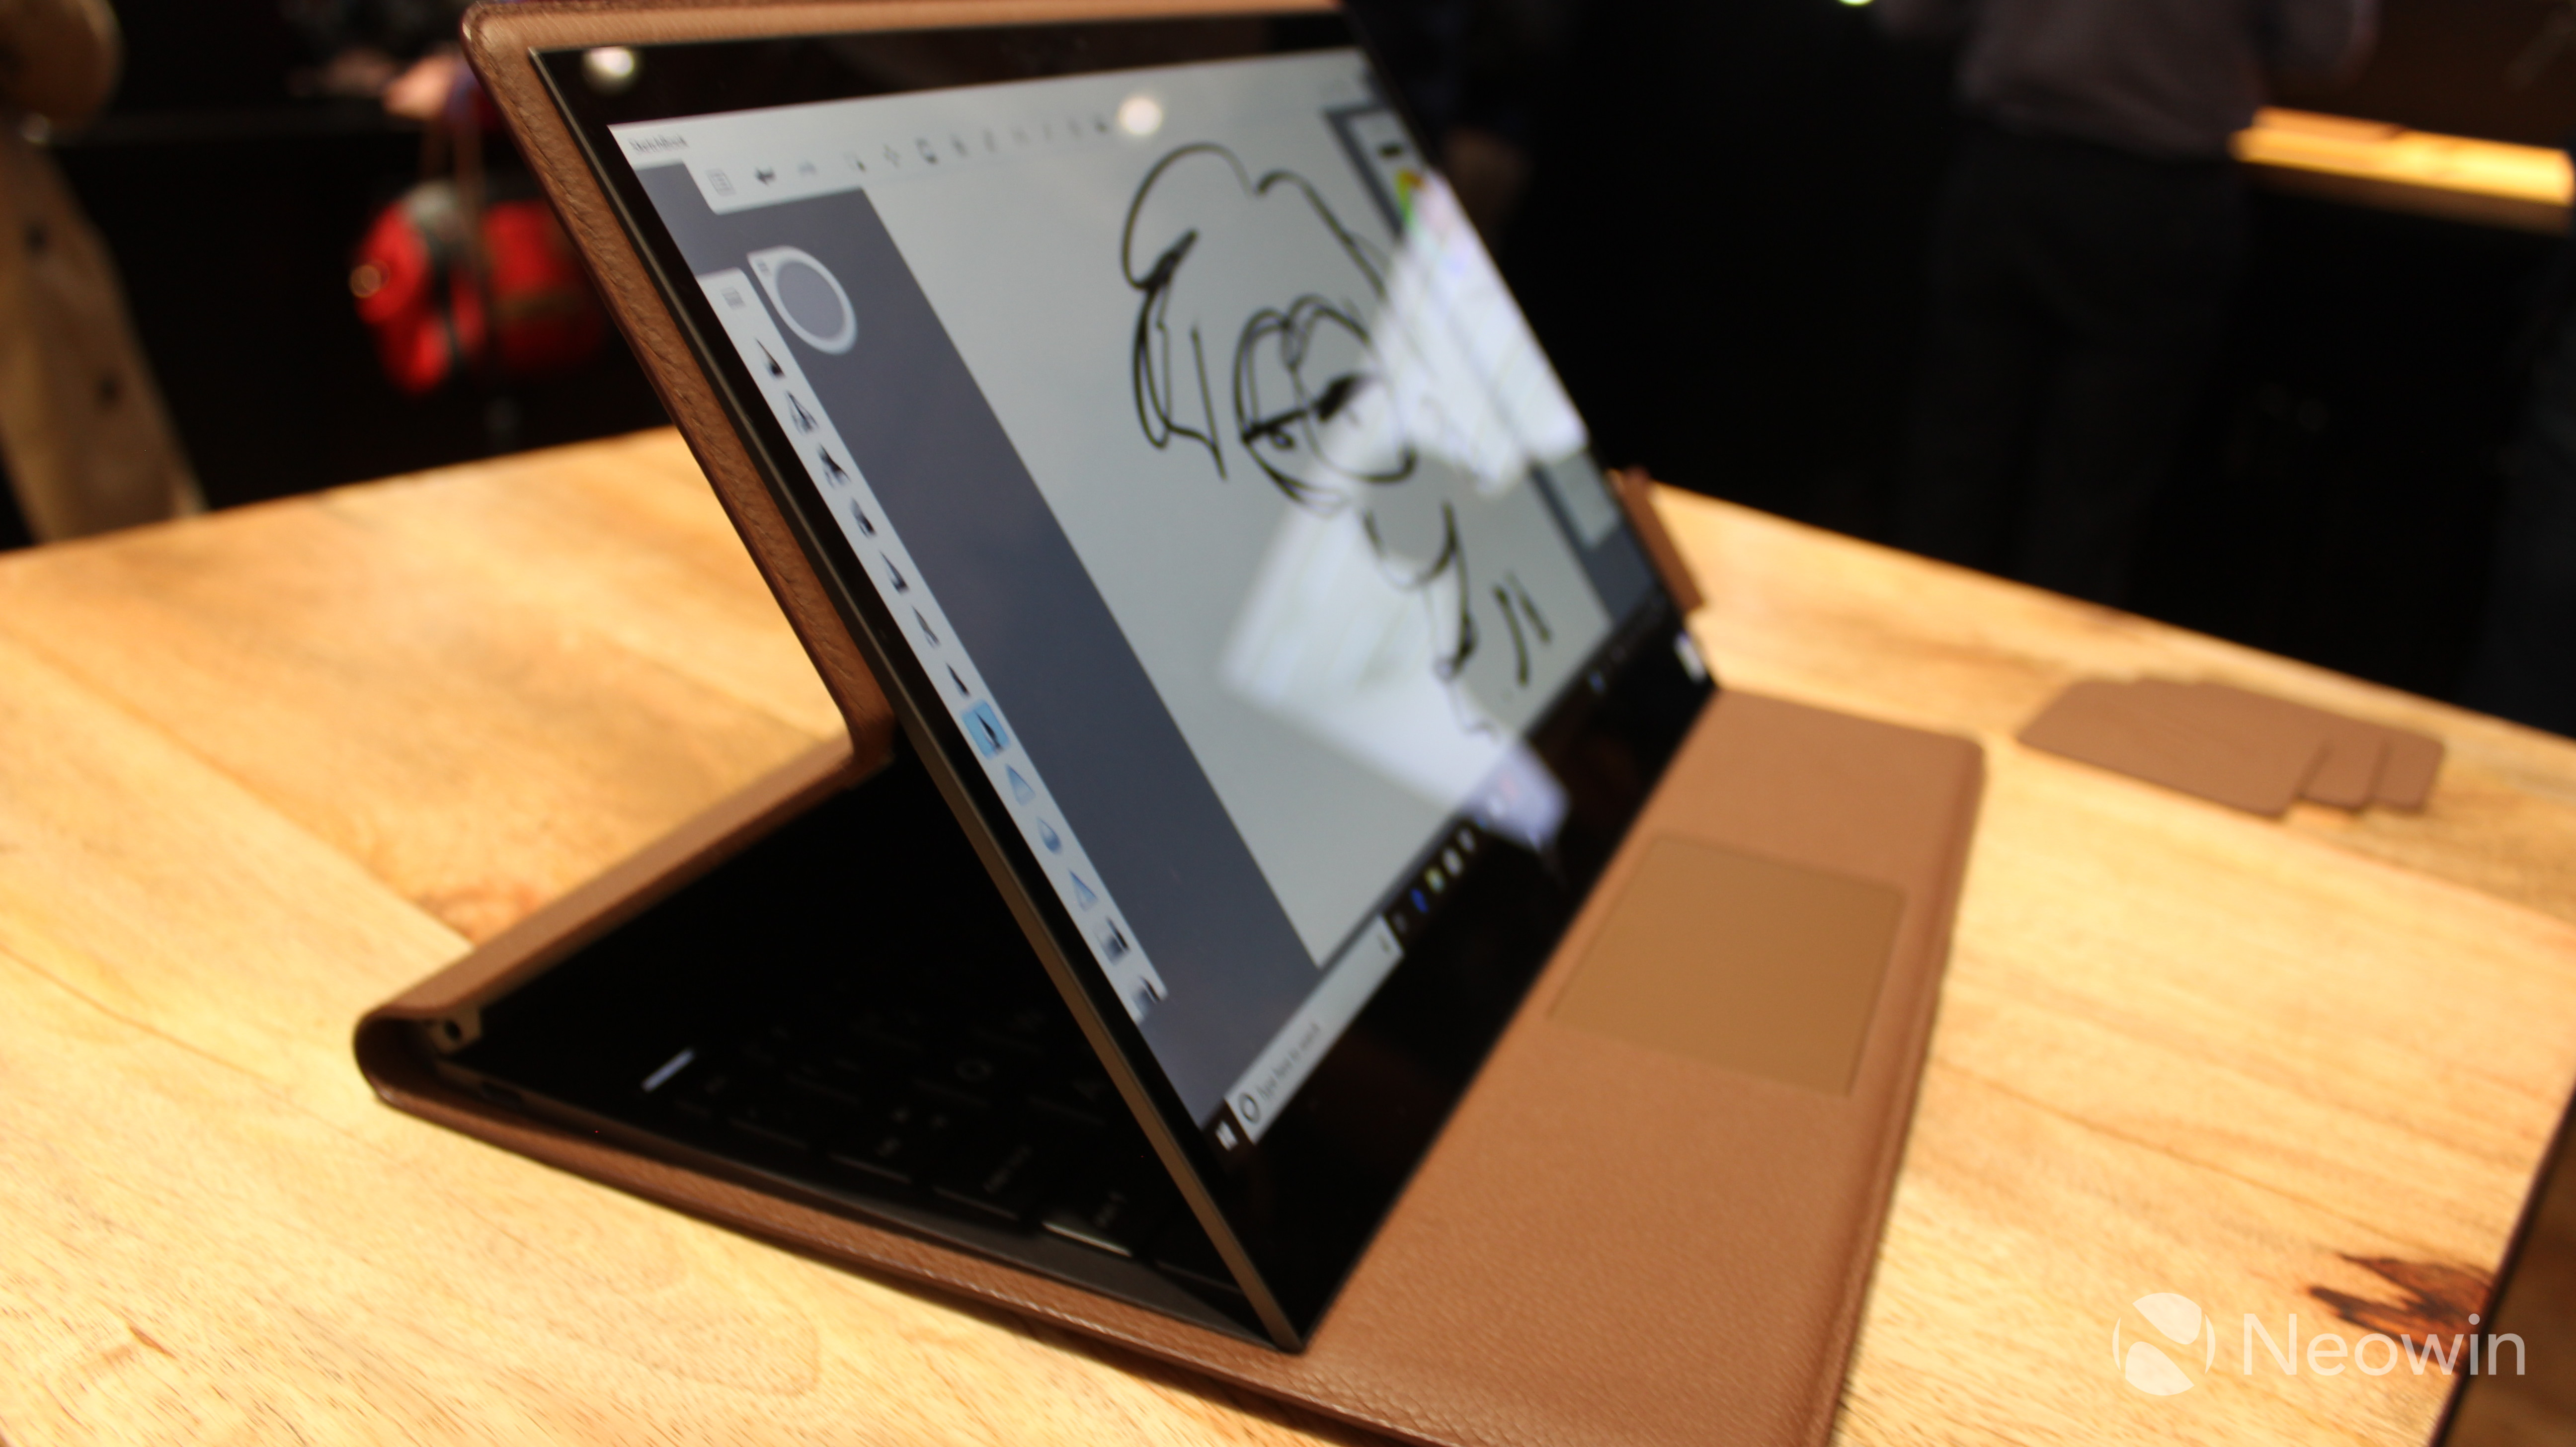 20ac44016c89 Hands on with HP's reinvented PC, the Spectre Folio - Neowin